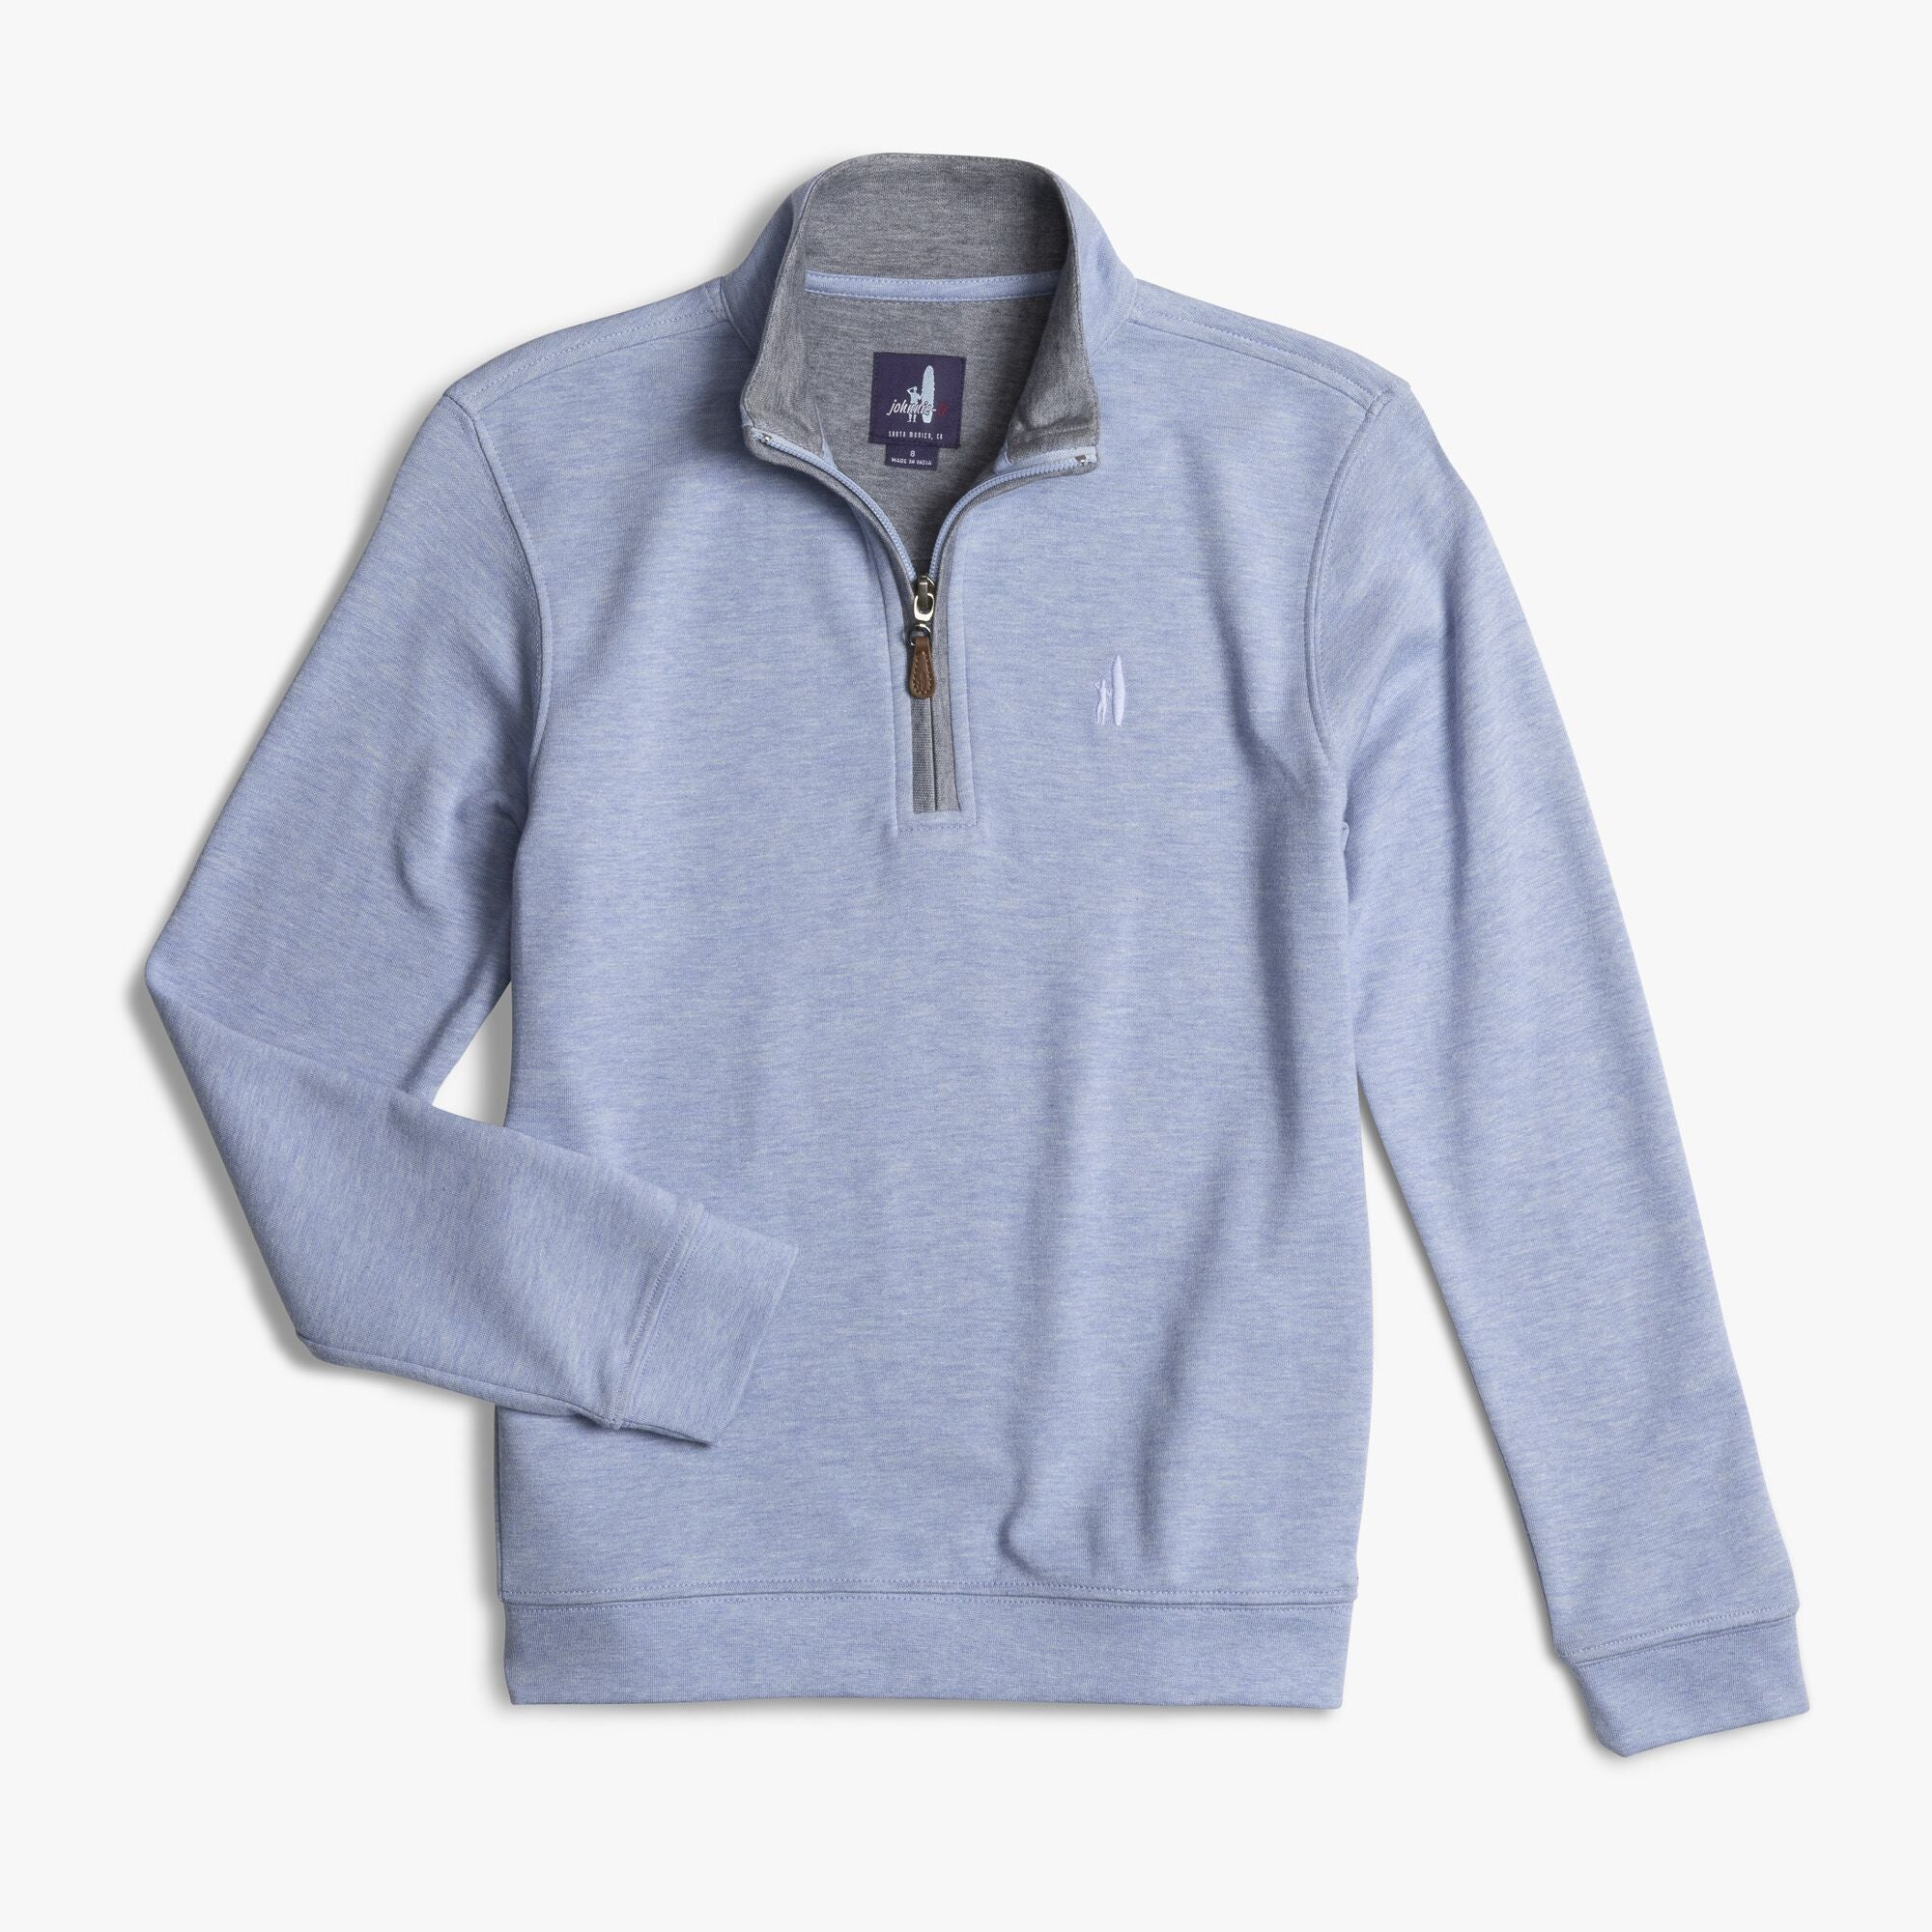 BOYS SULLY 1/4 ZIP - BLUE